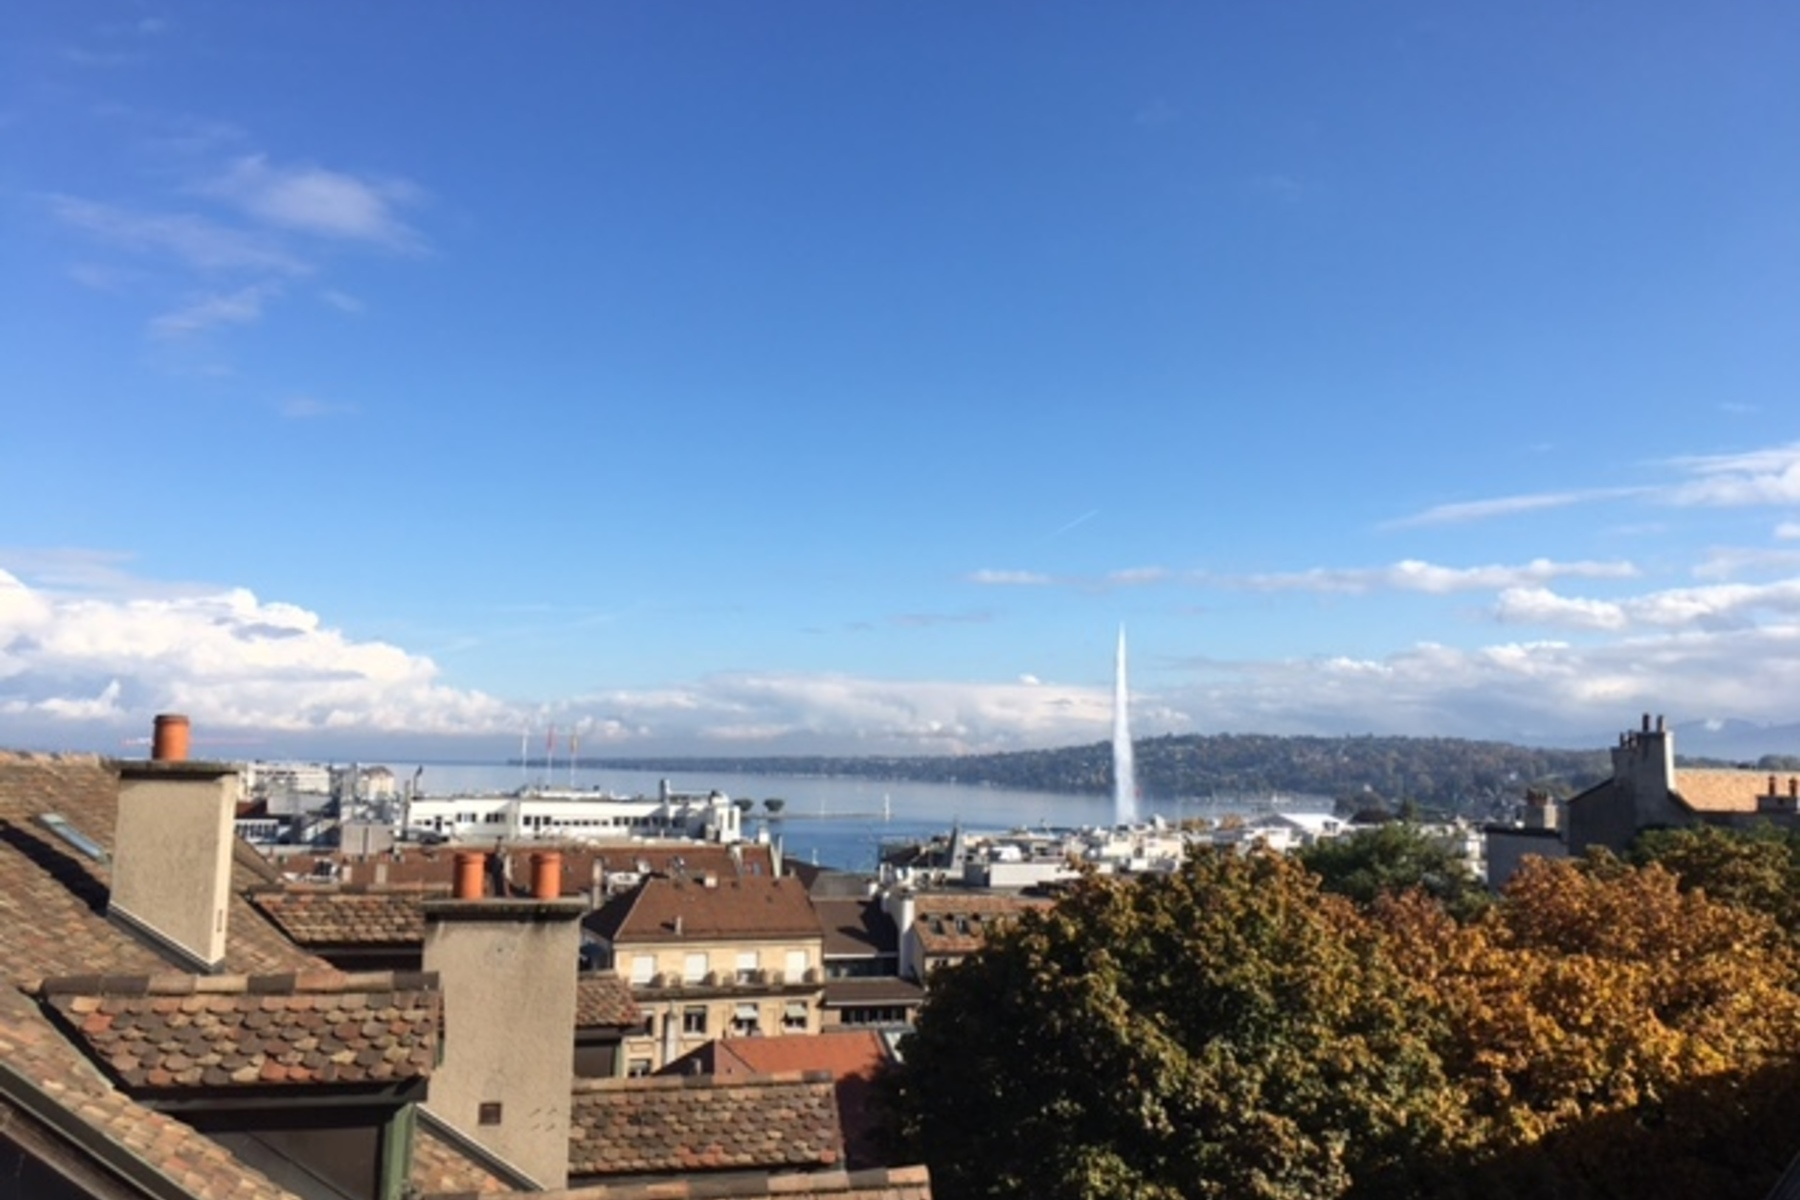 Квартира для того Продажа на Character and lake views guaranteed in this spacious apartment Genève - Vieille Ville, Geneva, Жене́ва, 1204 Швейцария